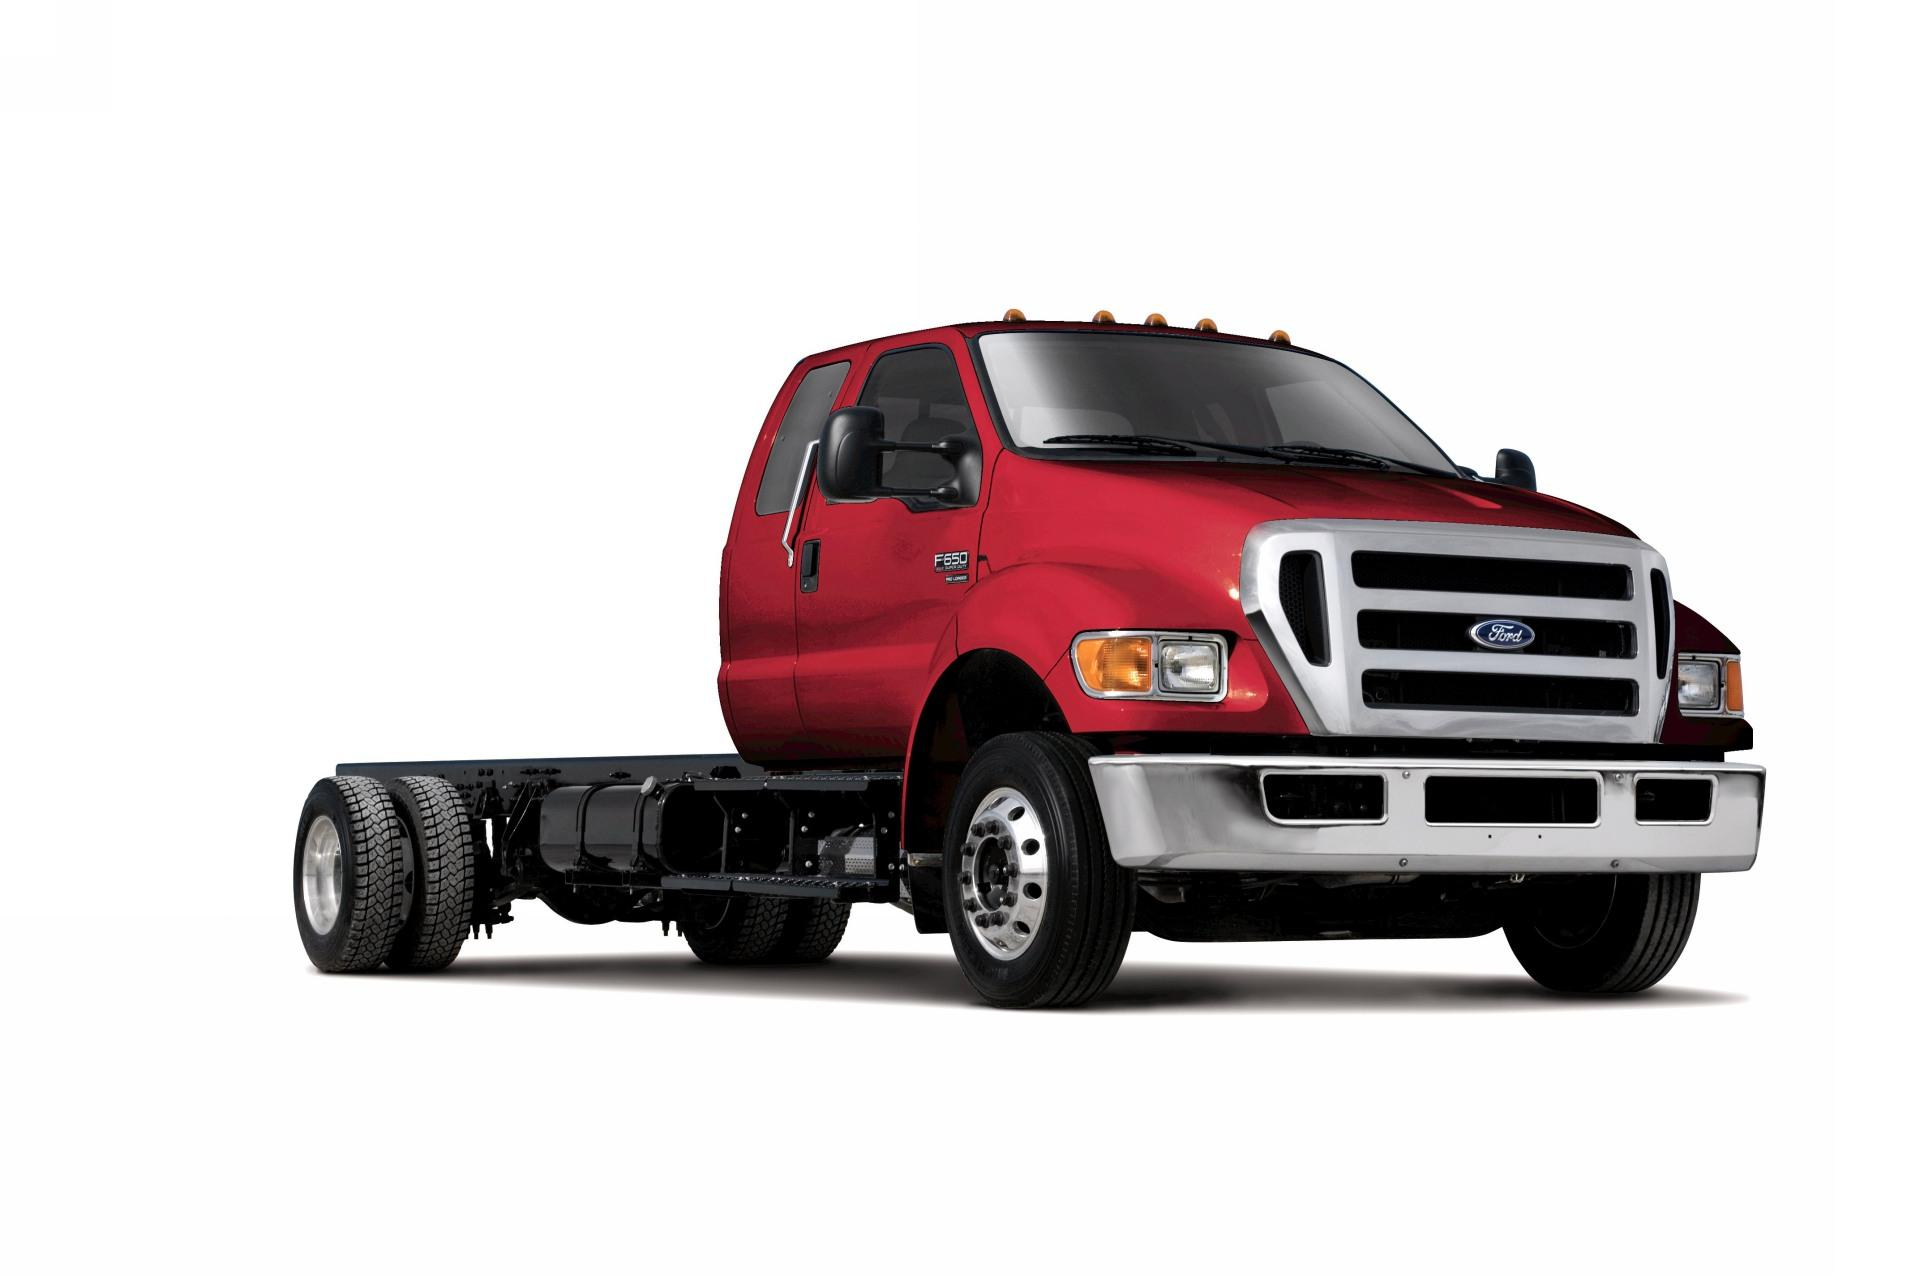 The ford f 650 concept truck is big the ford f 650 concept truck is - The Ford F 650 Concept Truck Is Big The Ford F 650 Concept Truck Is 51